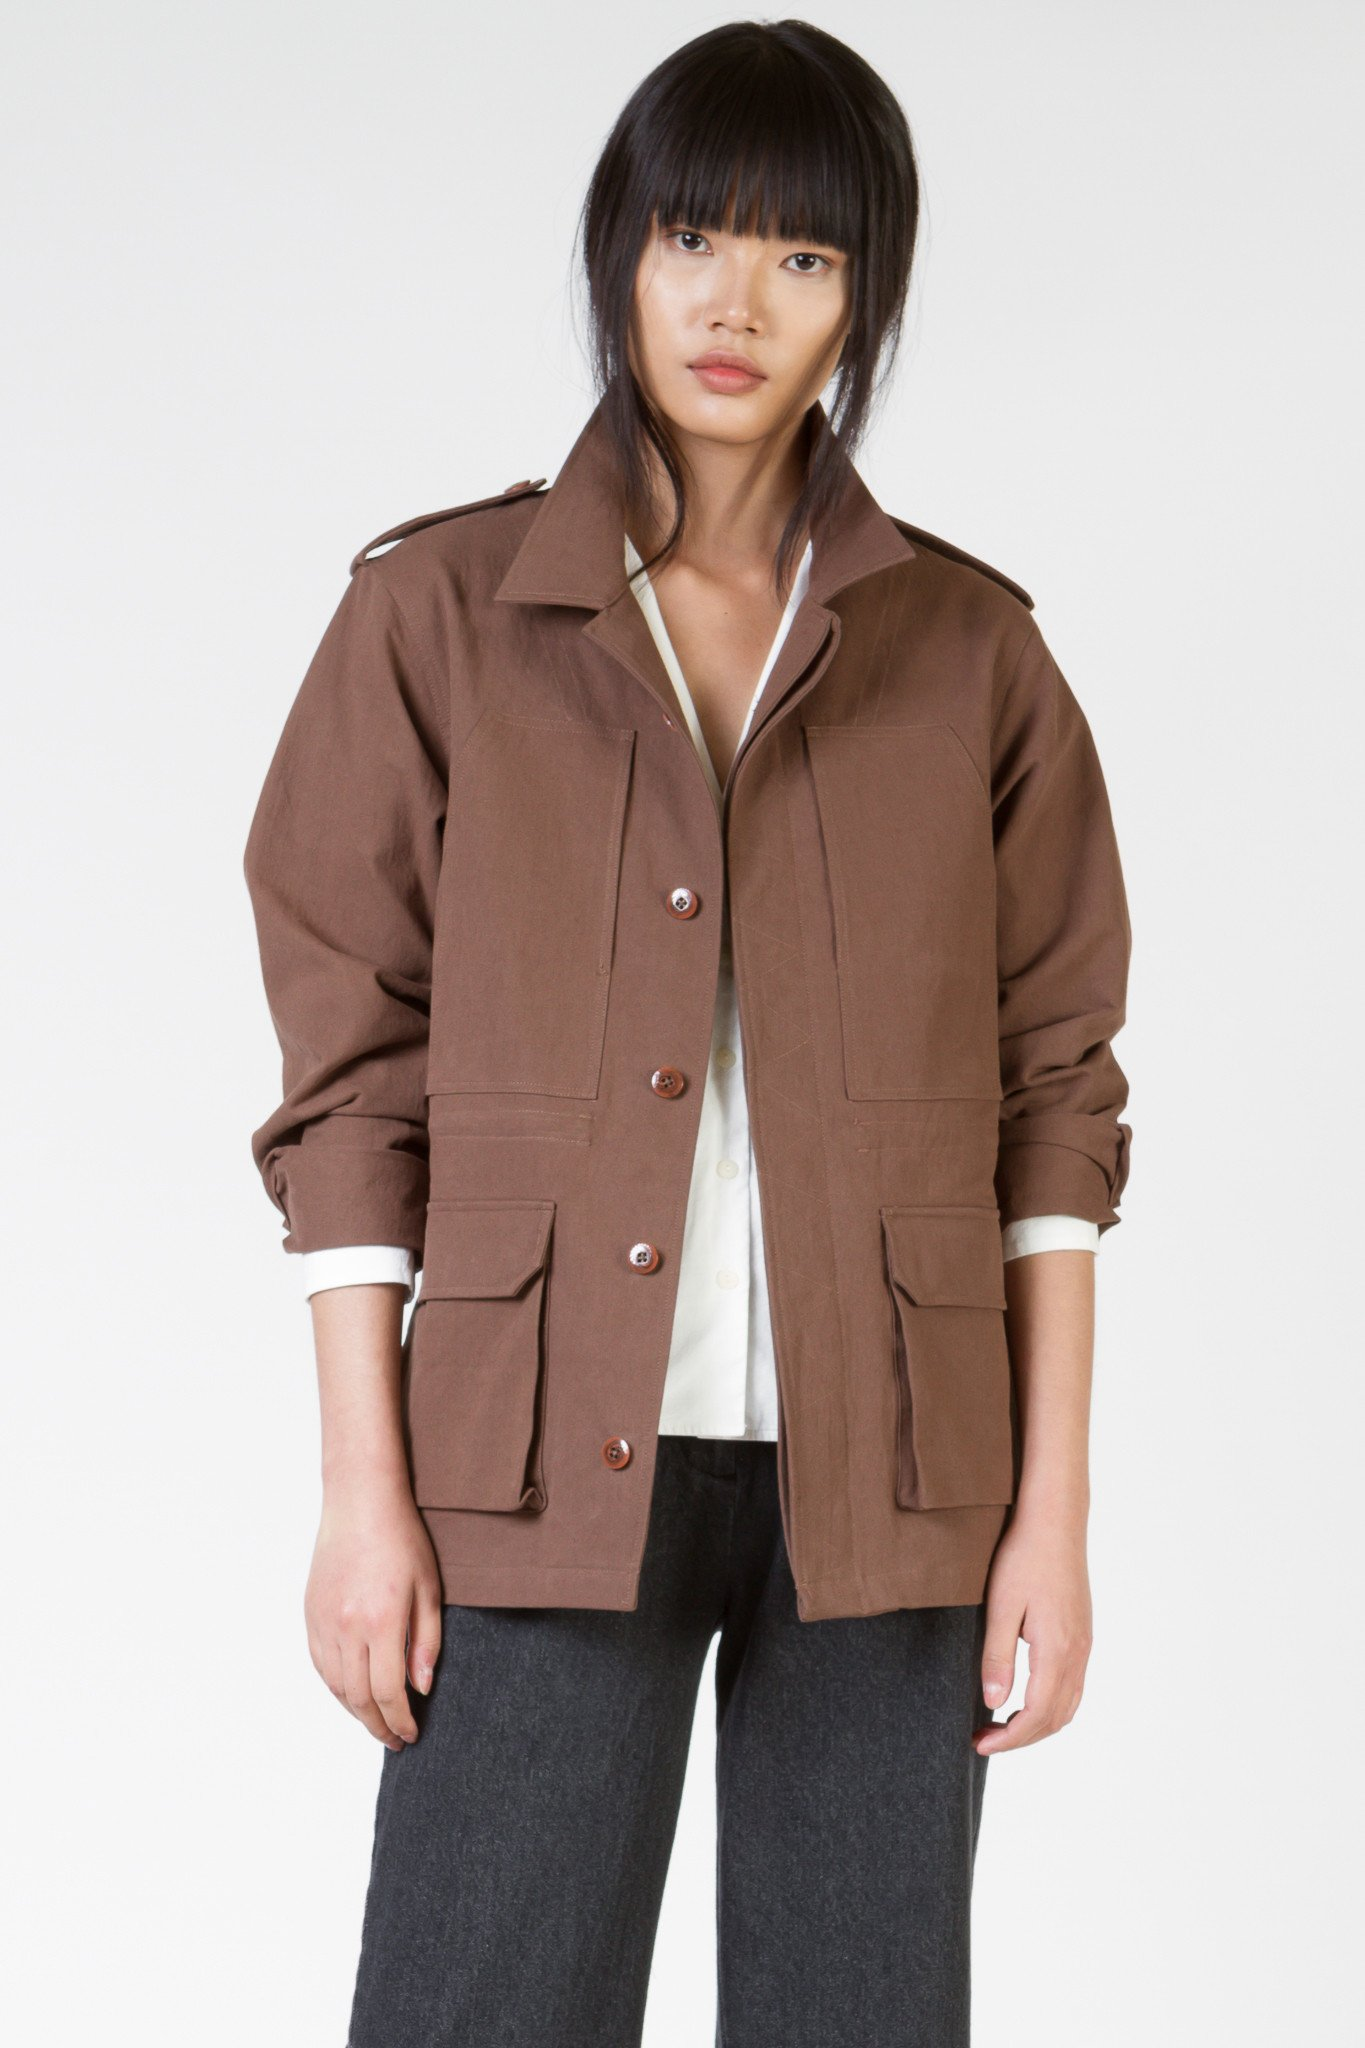 FIELD JACKET - BROWN $ 119